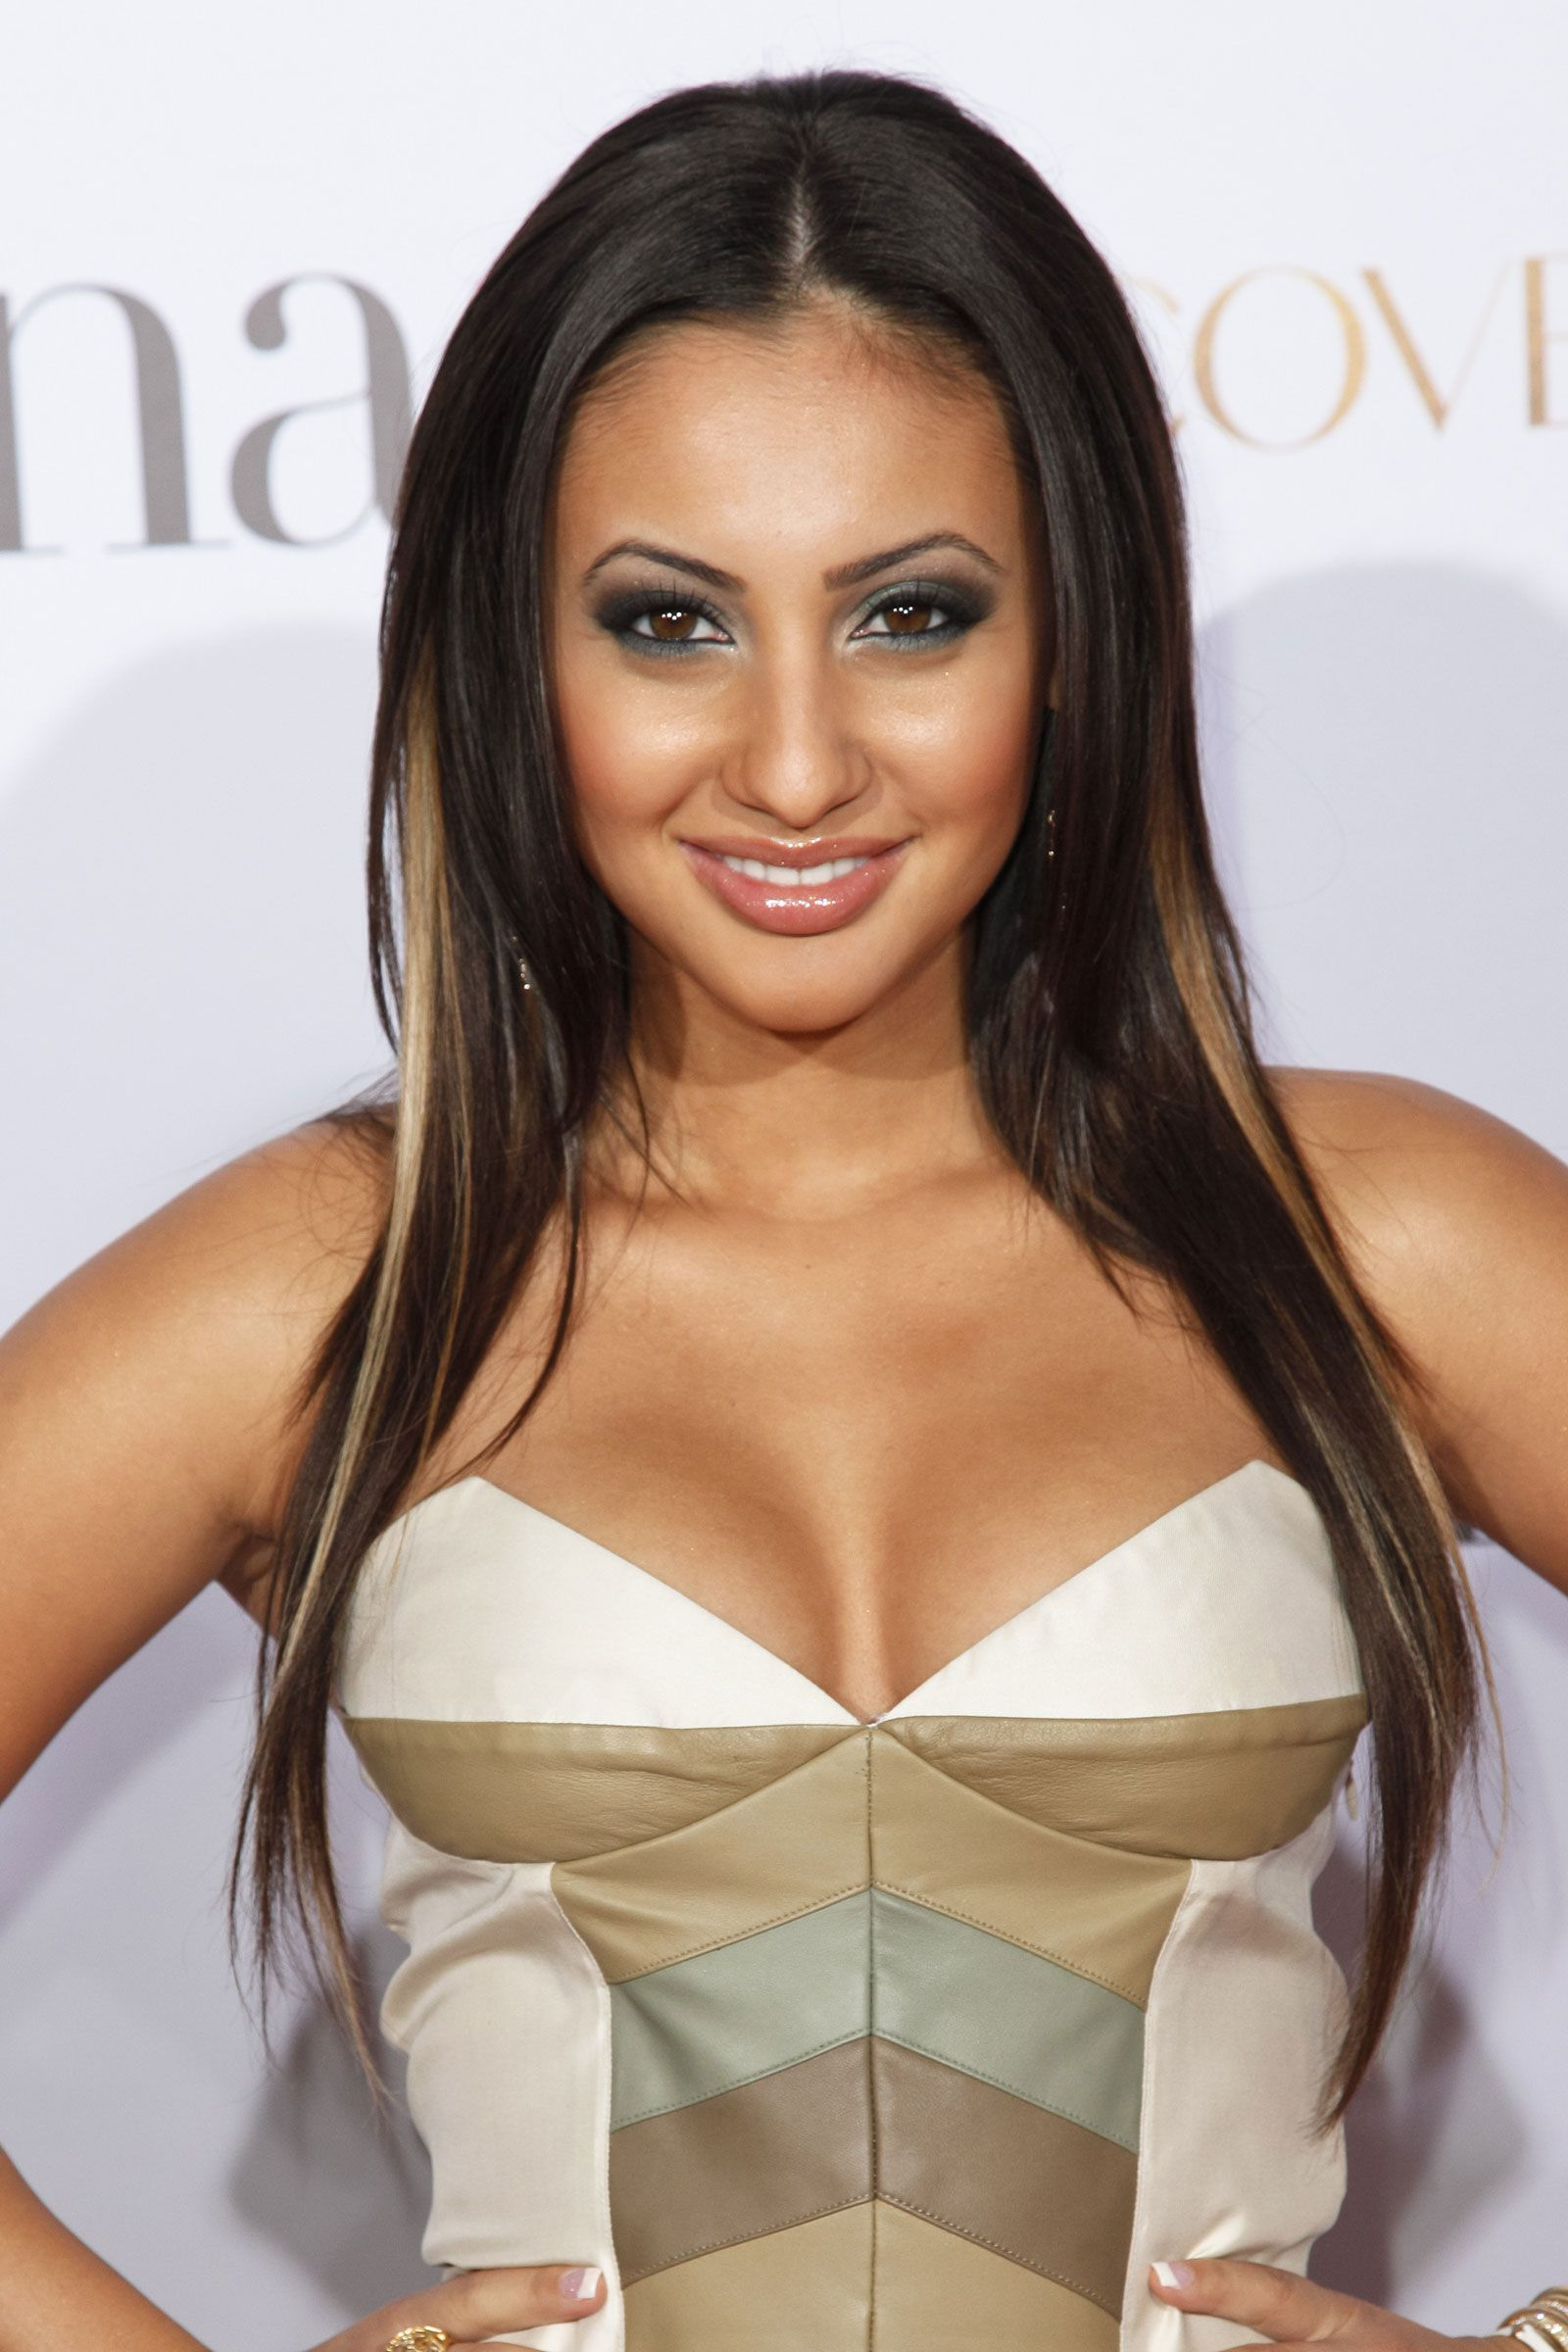 francia raisa instagramfrancia raisa insta, francia raisa tumblr, francia raisa listal, francia raisa body statistics, francia raisa, francia raisa instagram, francia raisa boyfriend, francia raisa and selena gomez, francia raisa height, francia raisa twitter, francia raisa 2014, francia raisa wiki, francia raisa bio, francia raisa wikipedia, francia raisa hot, francia raisa 2015, francia raisa movies, francia raisa net worth, francia raisa dancing, francia raisa weight